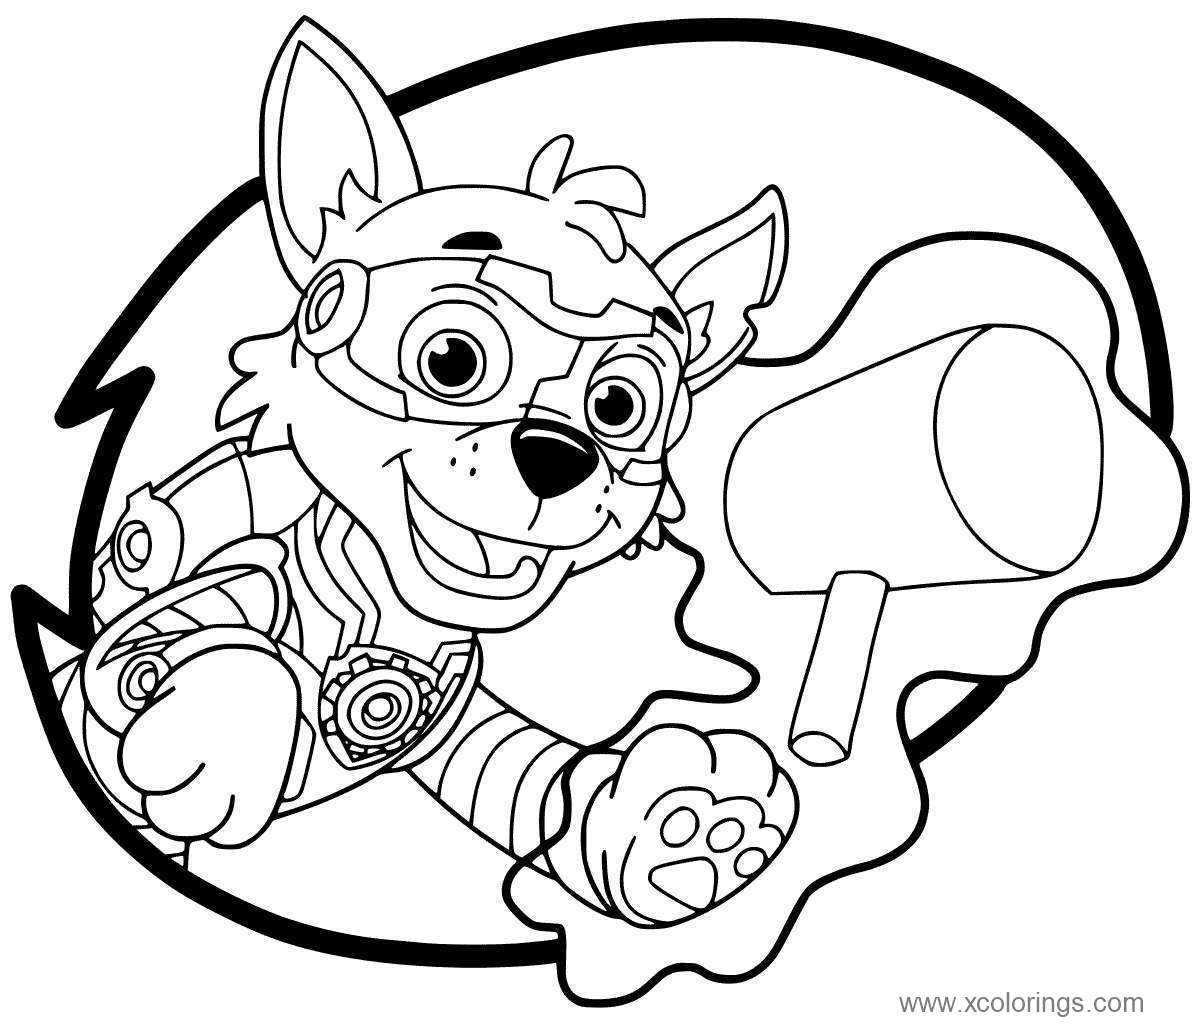 Free Paw Patrol Mighty Pups Rocky Coloring Pages printable